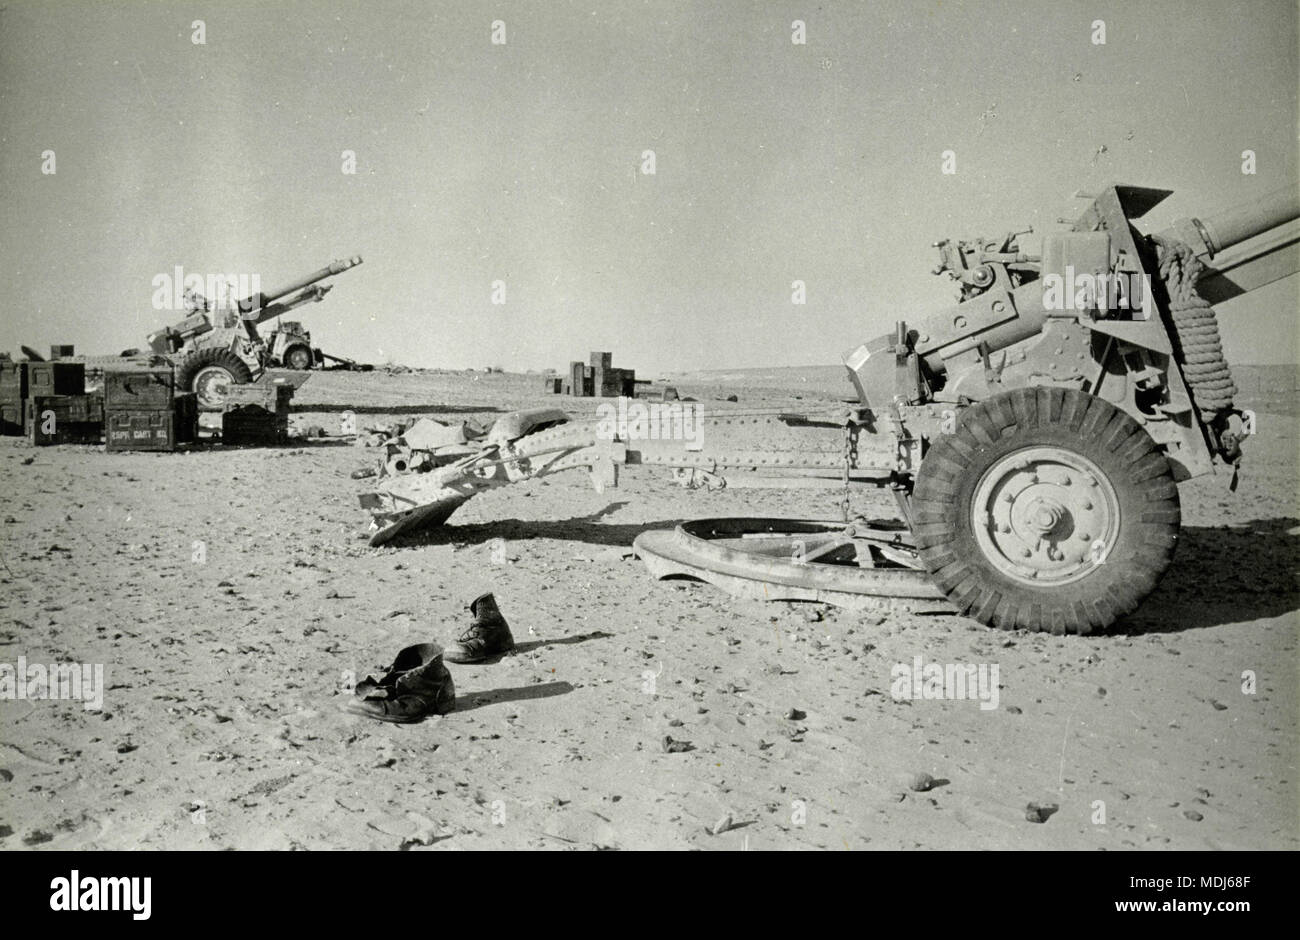 Abandoned artillery pieces in the battlefield, 1950s - Stock Image